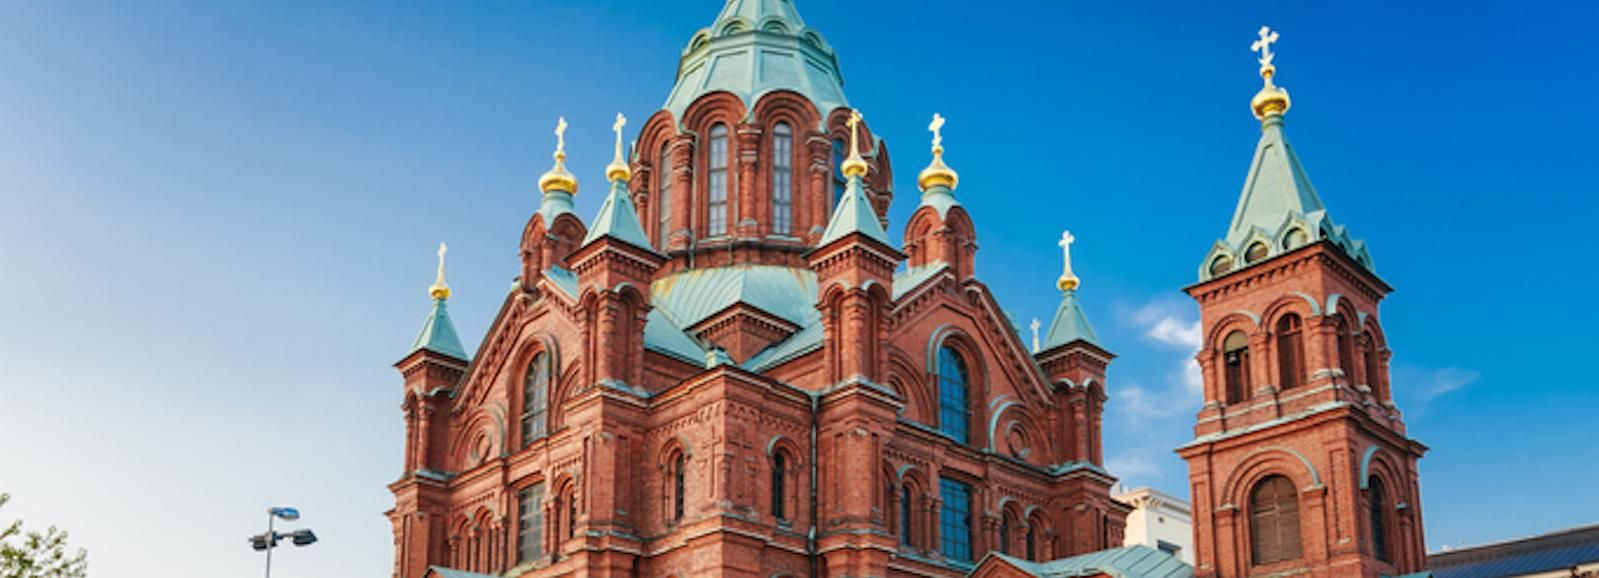 Helsinki: Guided Sightseeing with Free Time